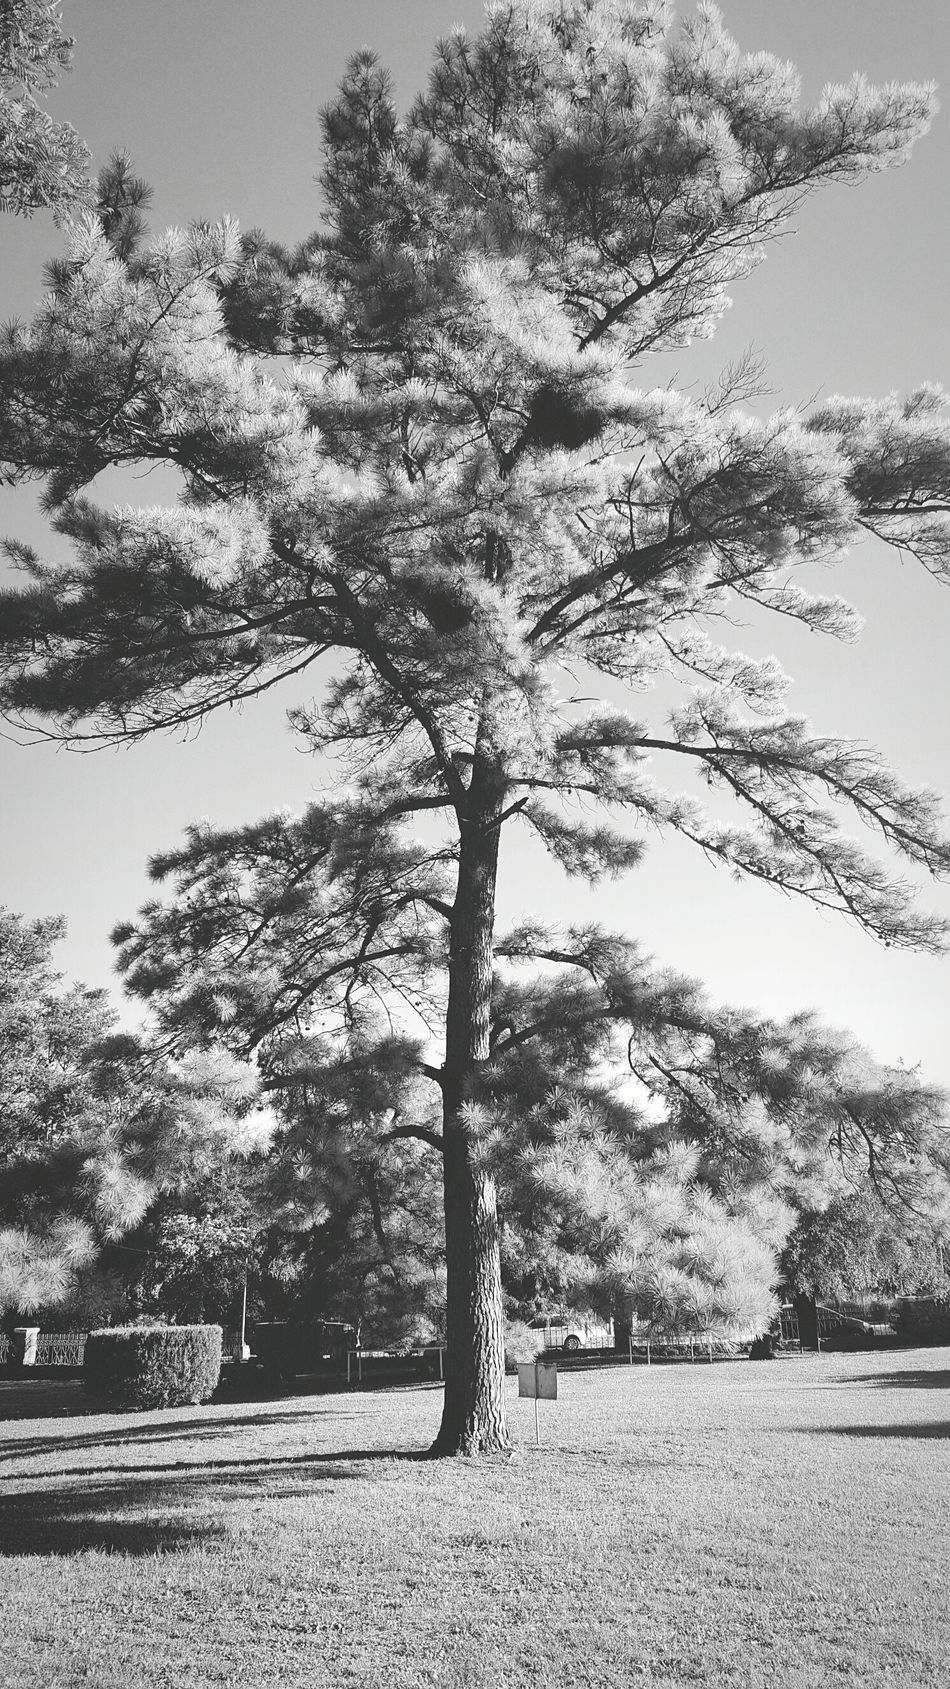 Tree Sky Growth Nature No People Beauty In Nature Green Color Day Outdoors Low Angle View Scenics Blackandwhite Justatree Black And White Collection